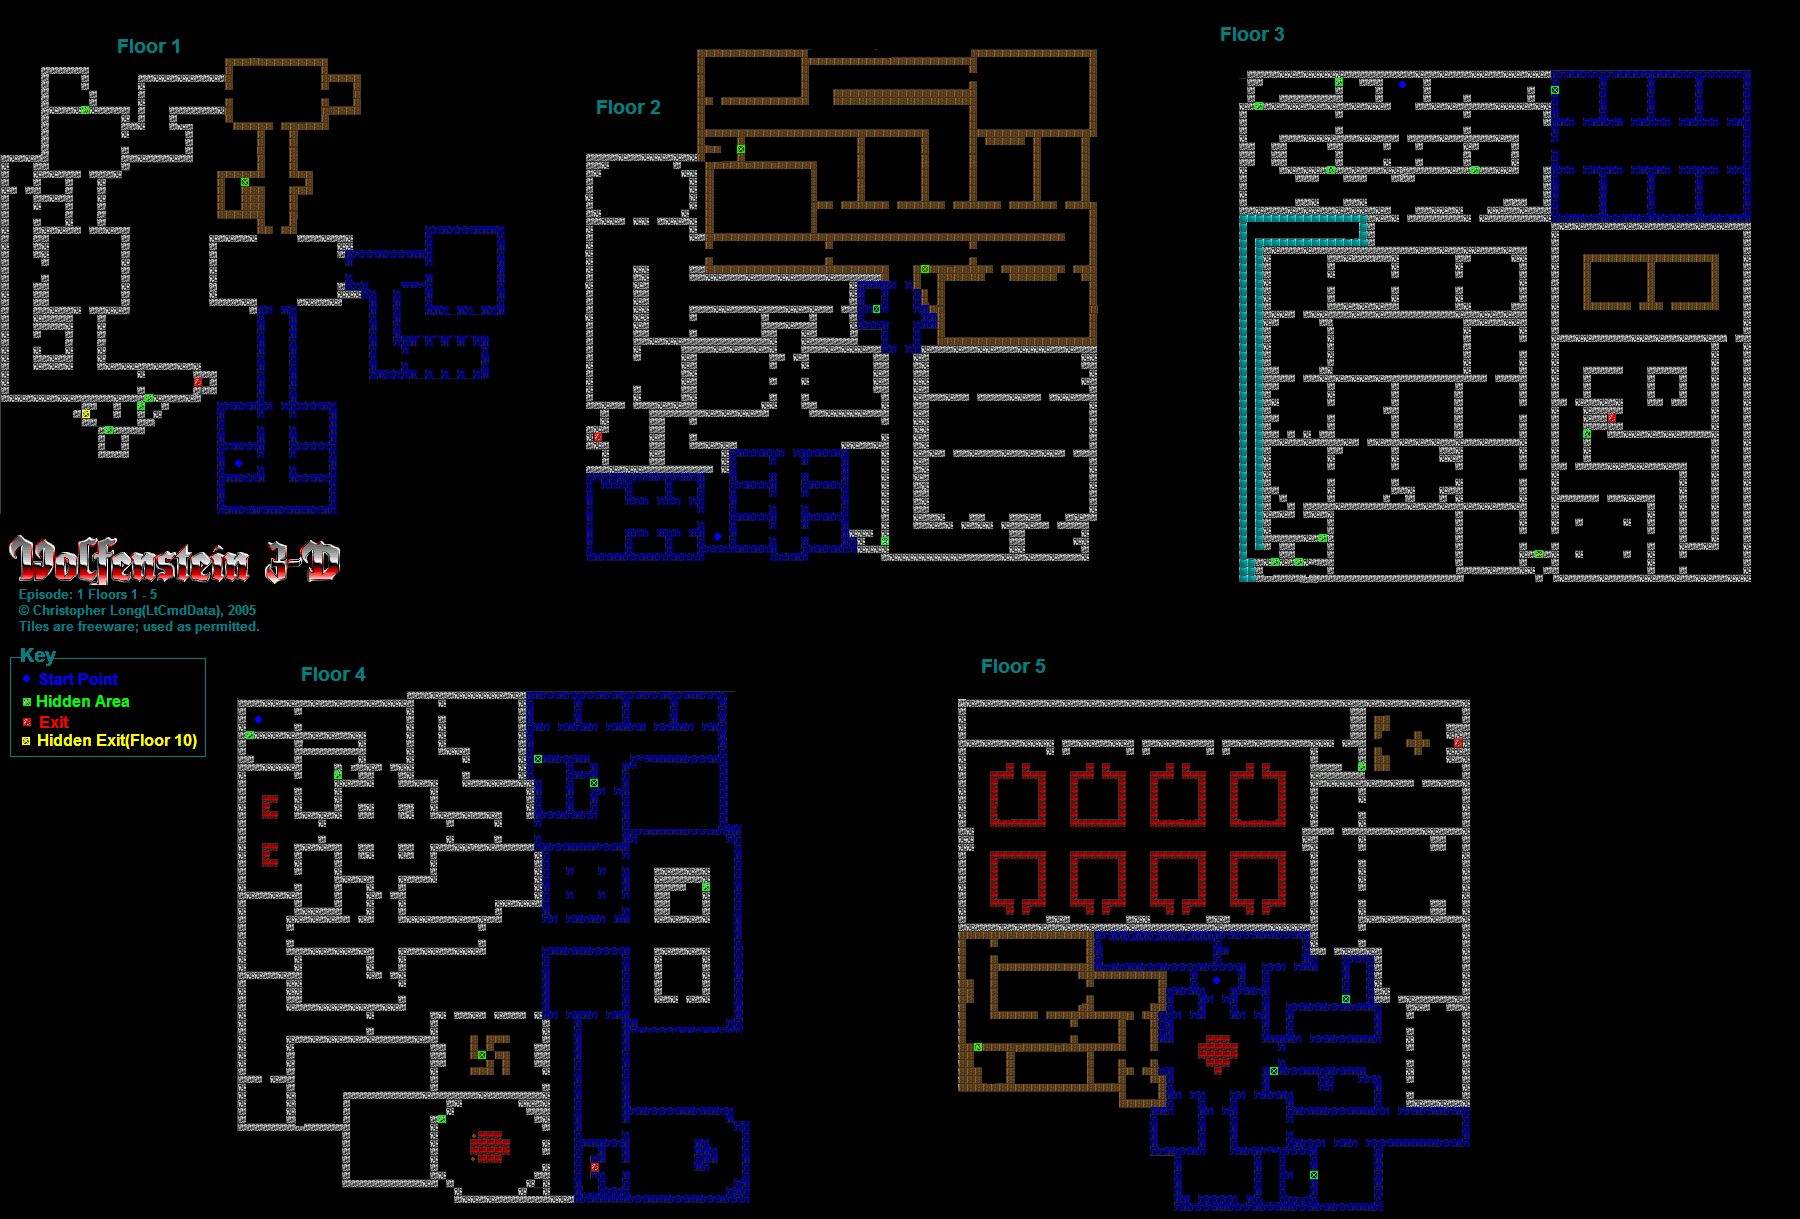 Wolfenstein 3D Maps With Keys Wolfenstein 3D (PC) Episode 1: Floors 1 5 Maps by AWing Pilot